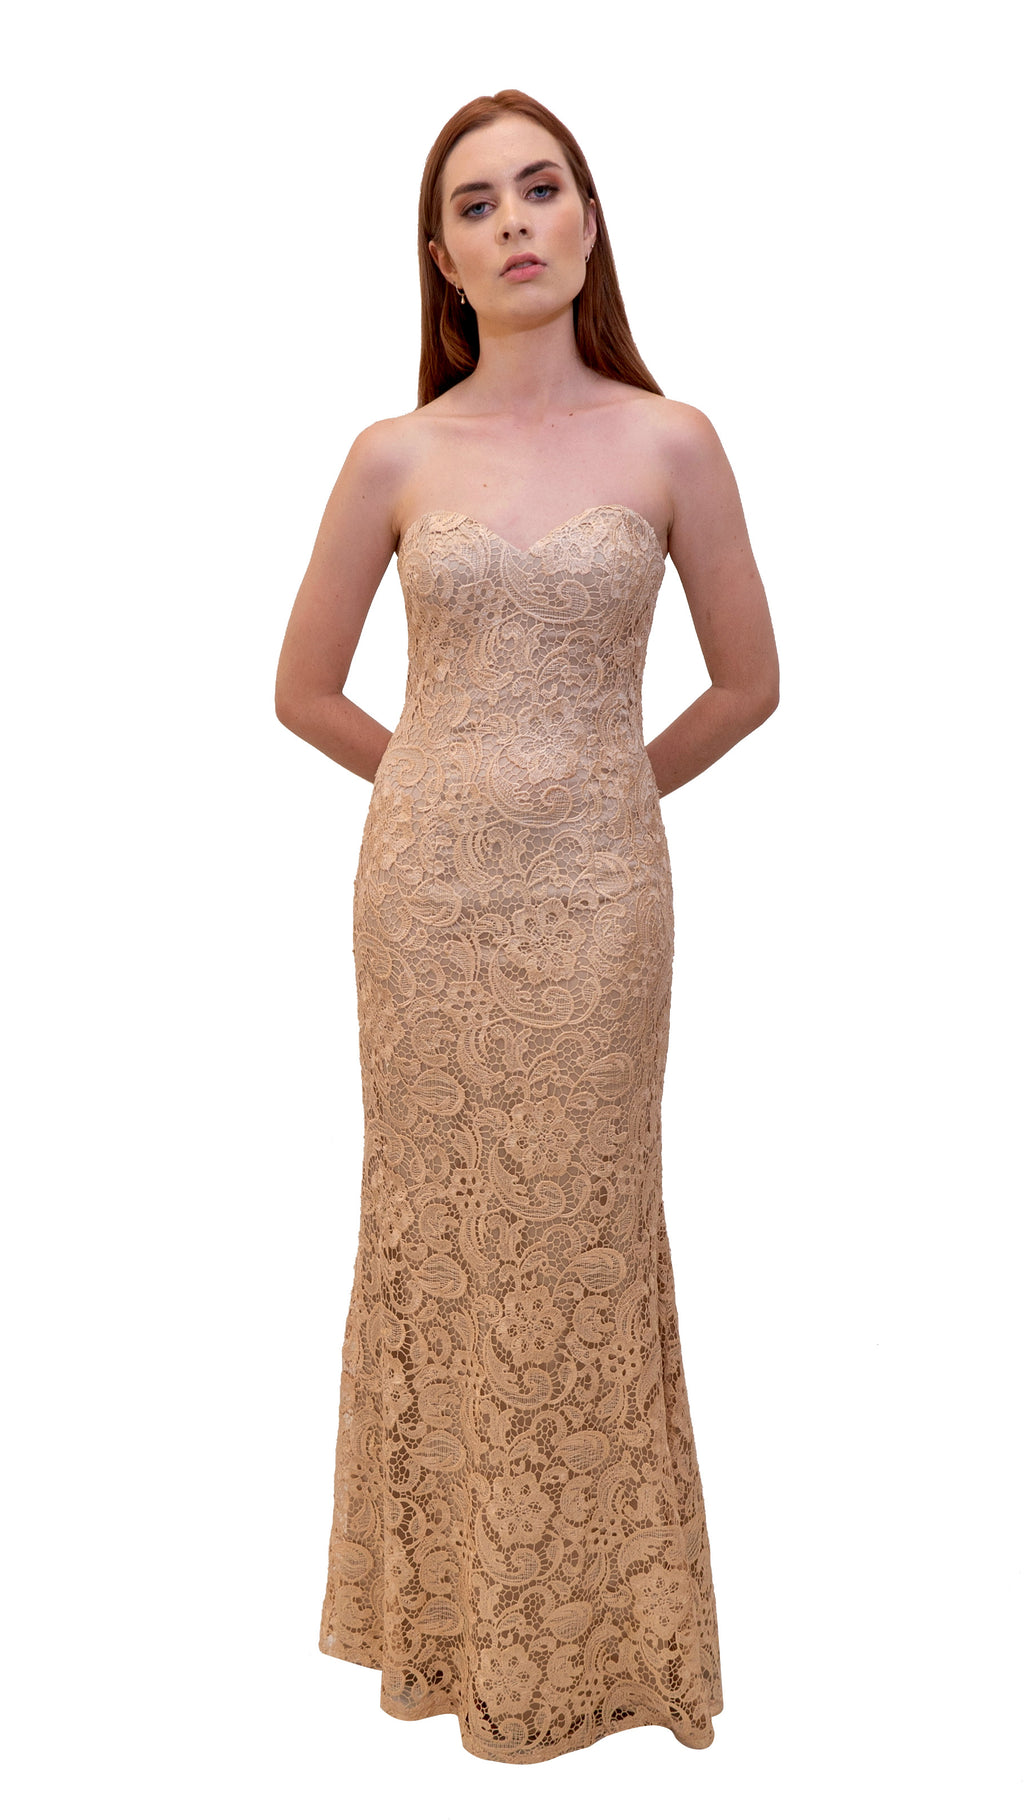 Bariano Strapless Lace Dress Metallic Blush